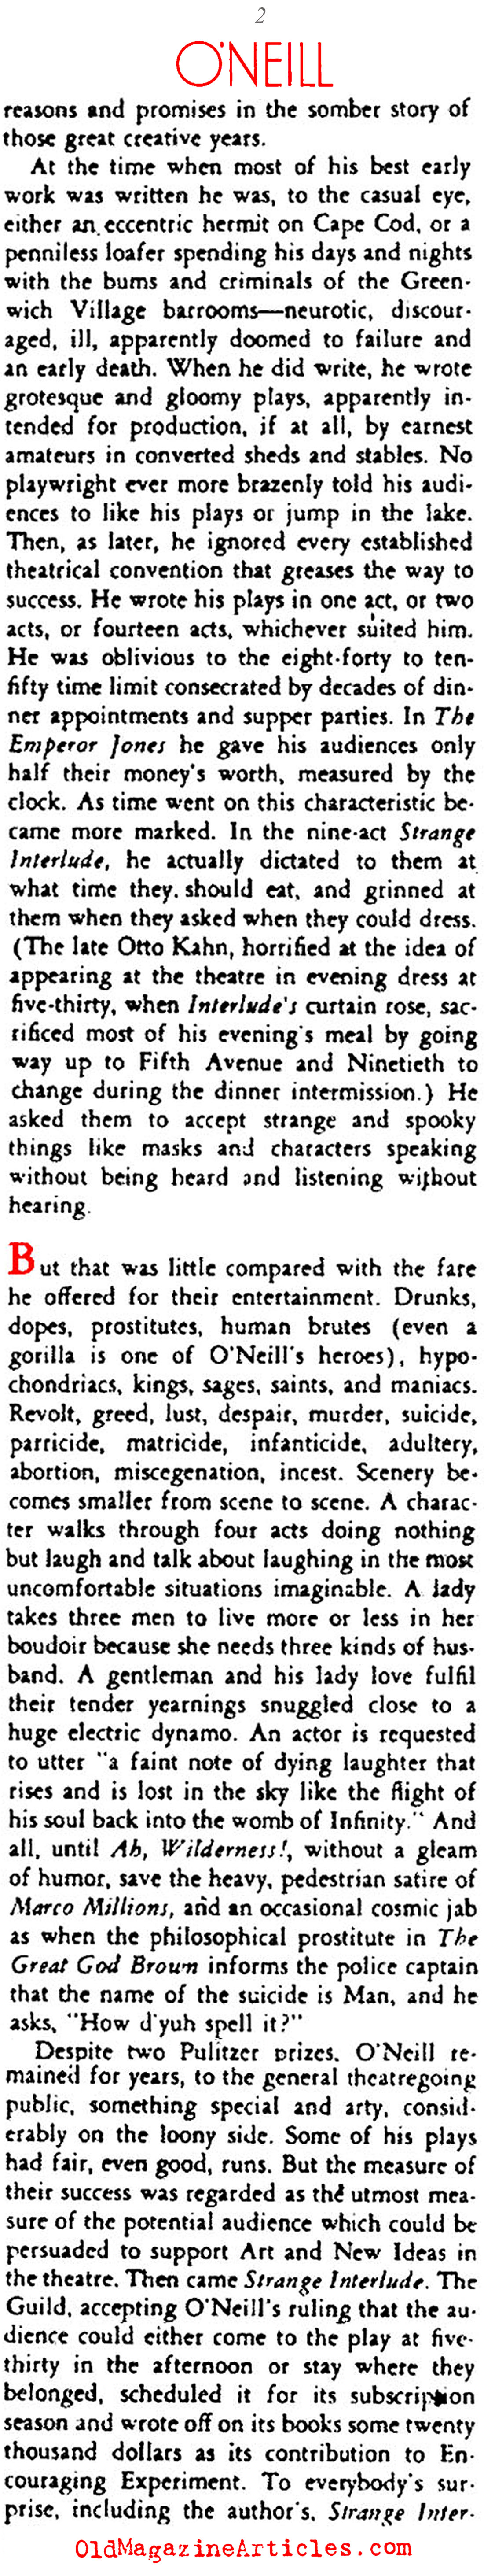 What's Next for Eugene O'Neill? (Stage Magazine, 1935)